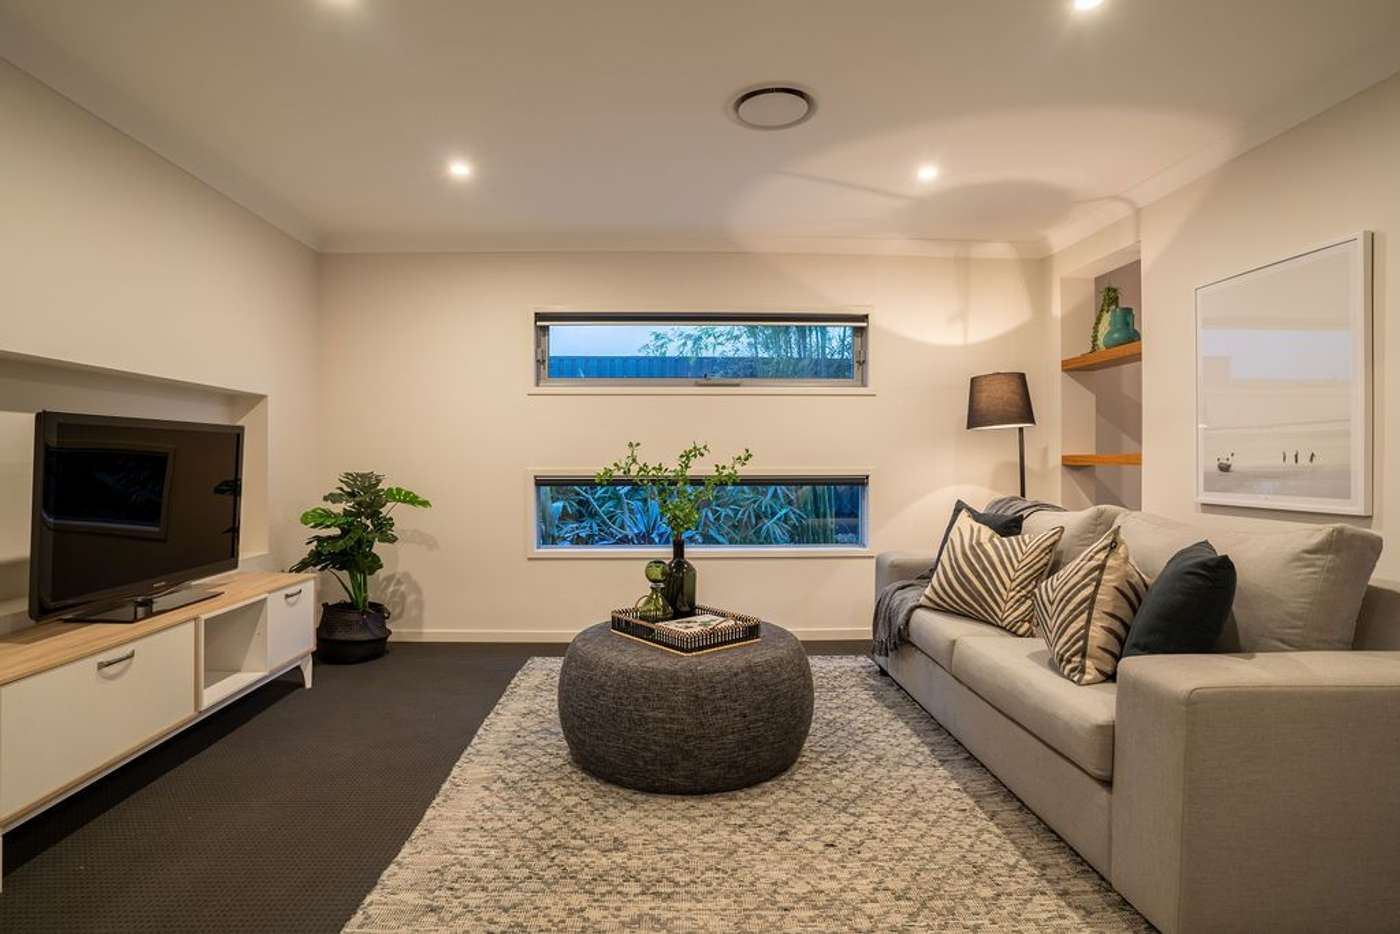 Fifth view of Homely house listing, 84 Cooper Crescent, Rochedale QLD 4123